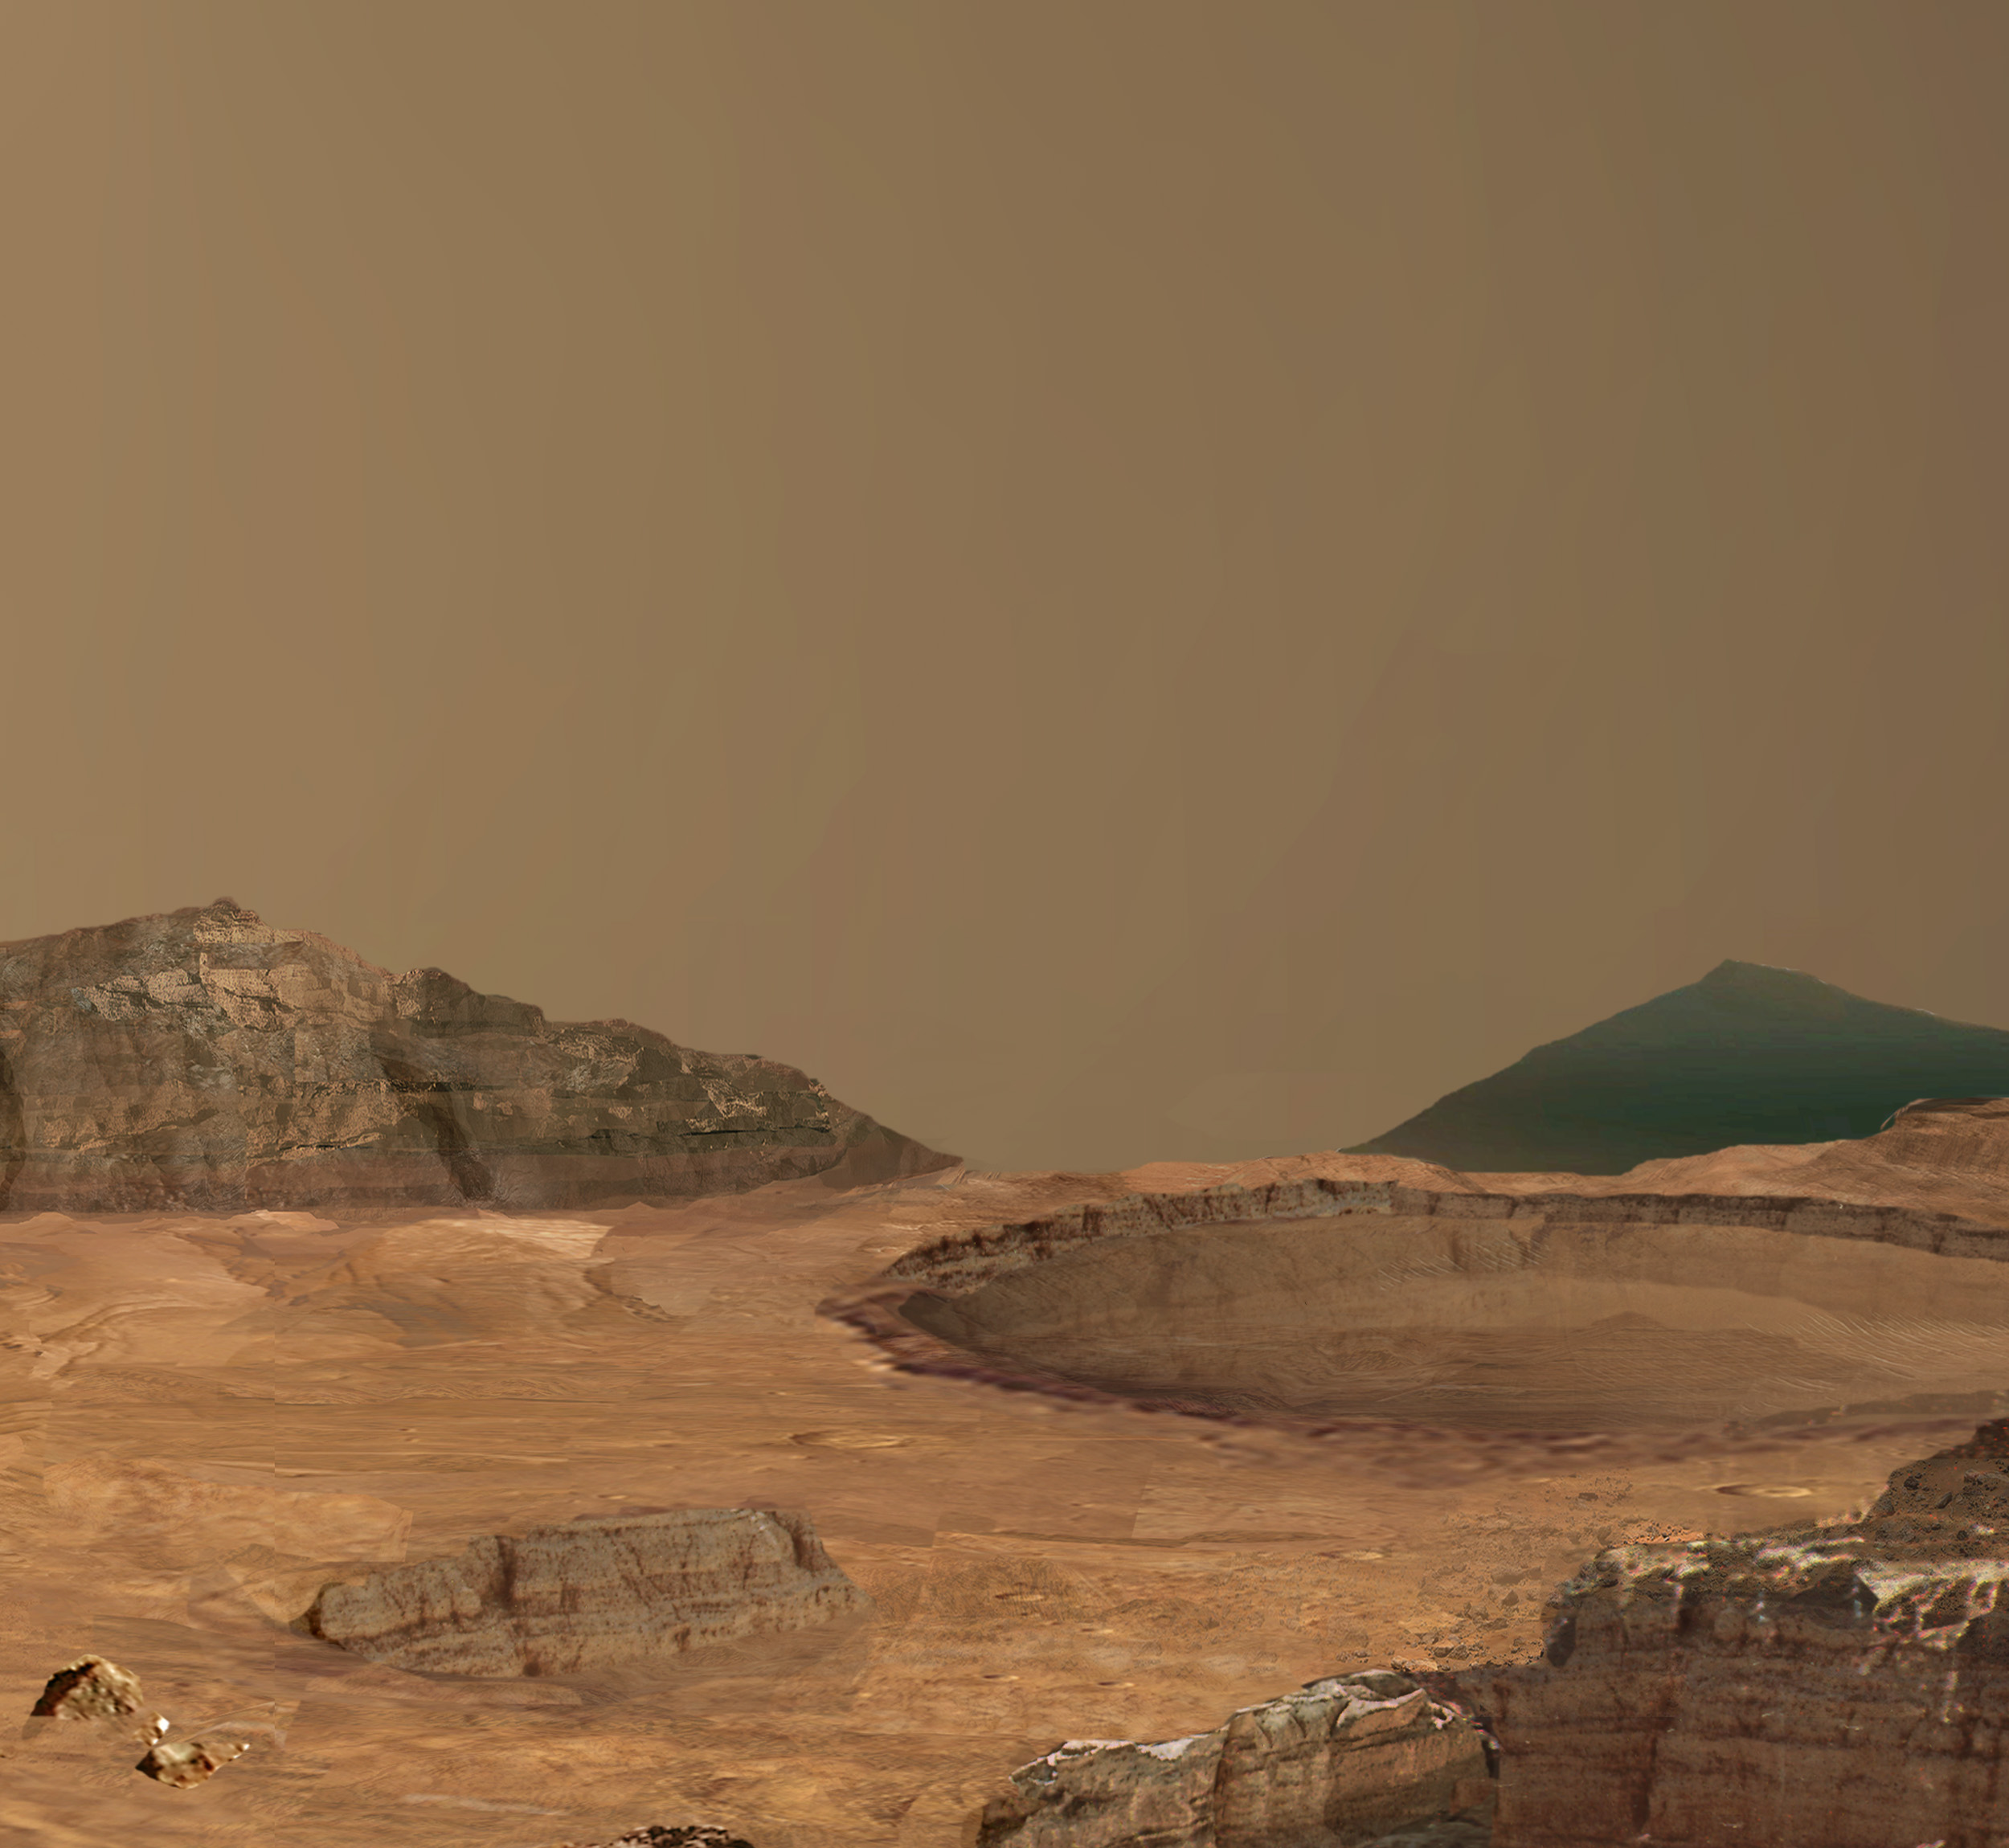 mars rover missions - photo #41